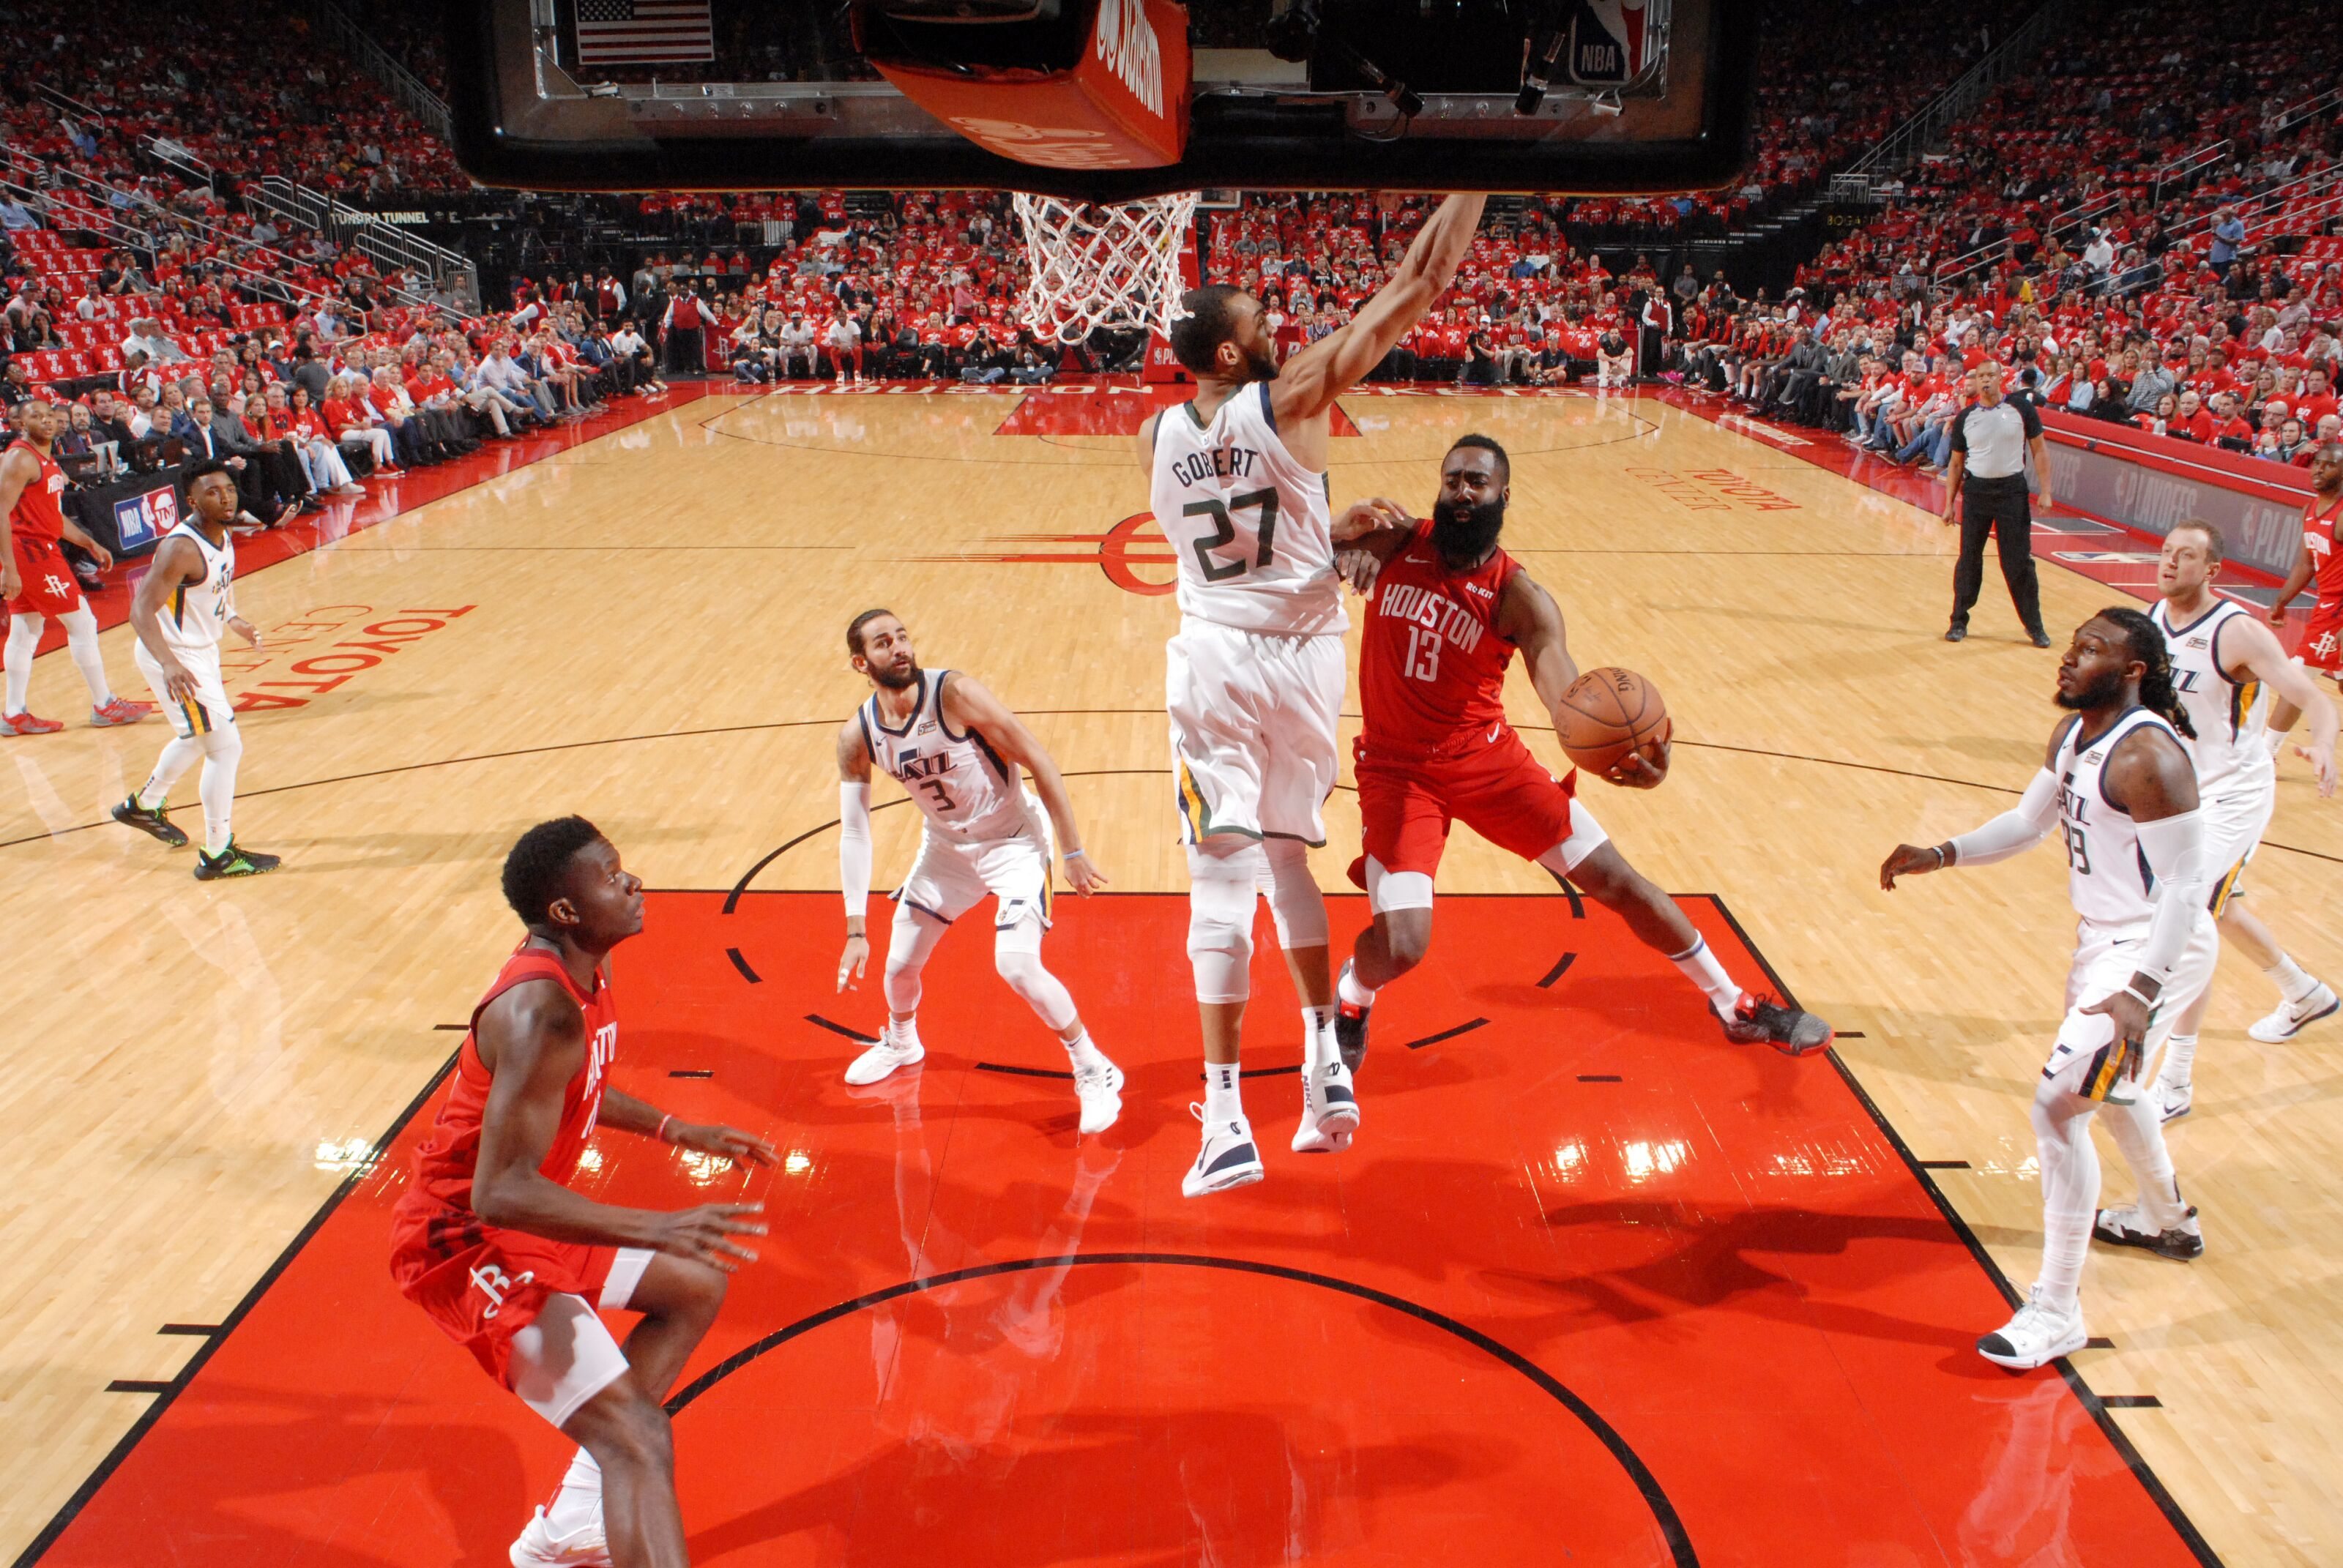 HOUSTON, TX - APRIL 24 : James Harden #13 of the Houston Rockets passes the ball against the Utah Jazz during Game Five of Round One of the 2019 NBA Playoffs on April 24, 2019 at the Toyota Center in Houston, Texas. NOTE TO USER: User expressly acknowledges and agrees that, by downloading and or using this photograph, User is consenting to the terms and conditions of the Getty Images License Agreement. Mandatory Copyright Notice: Copyright 2019 NBAE (Photo by Bill Baptist/NBAE via Getty Images)